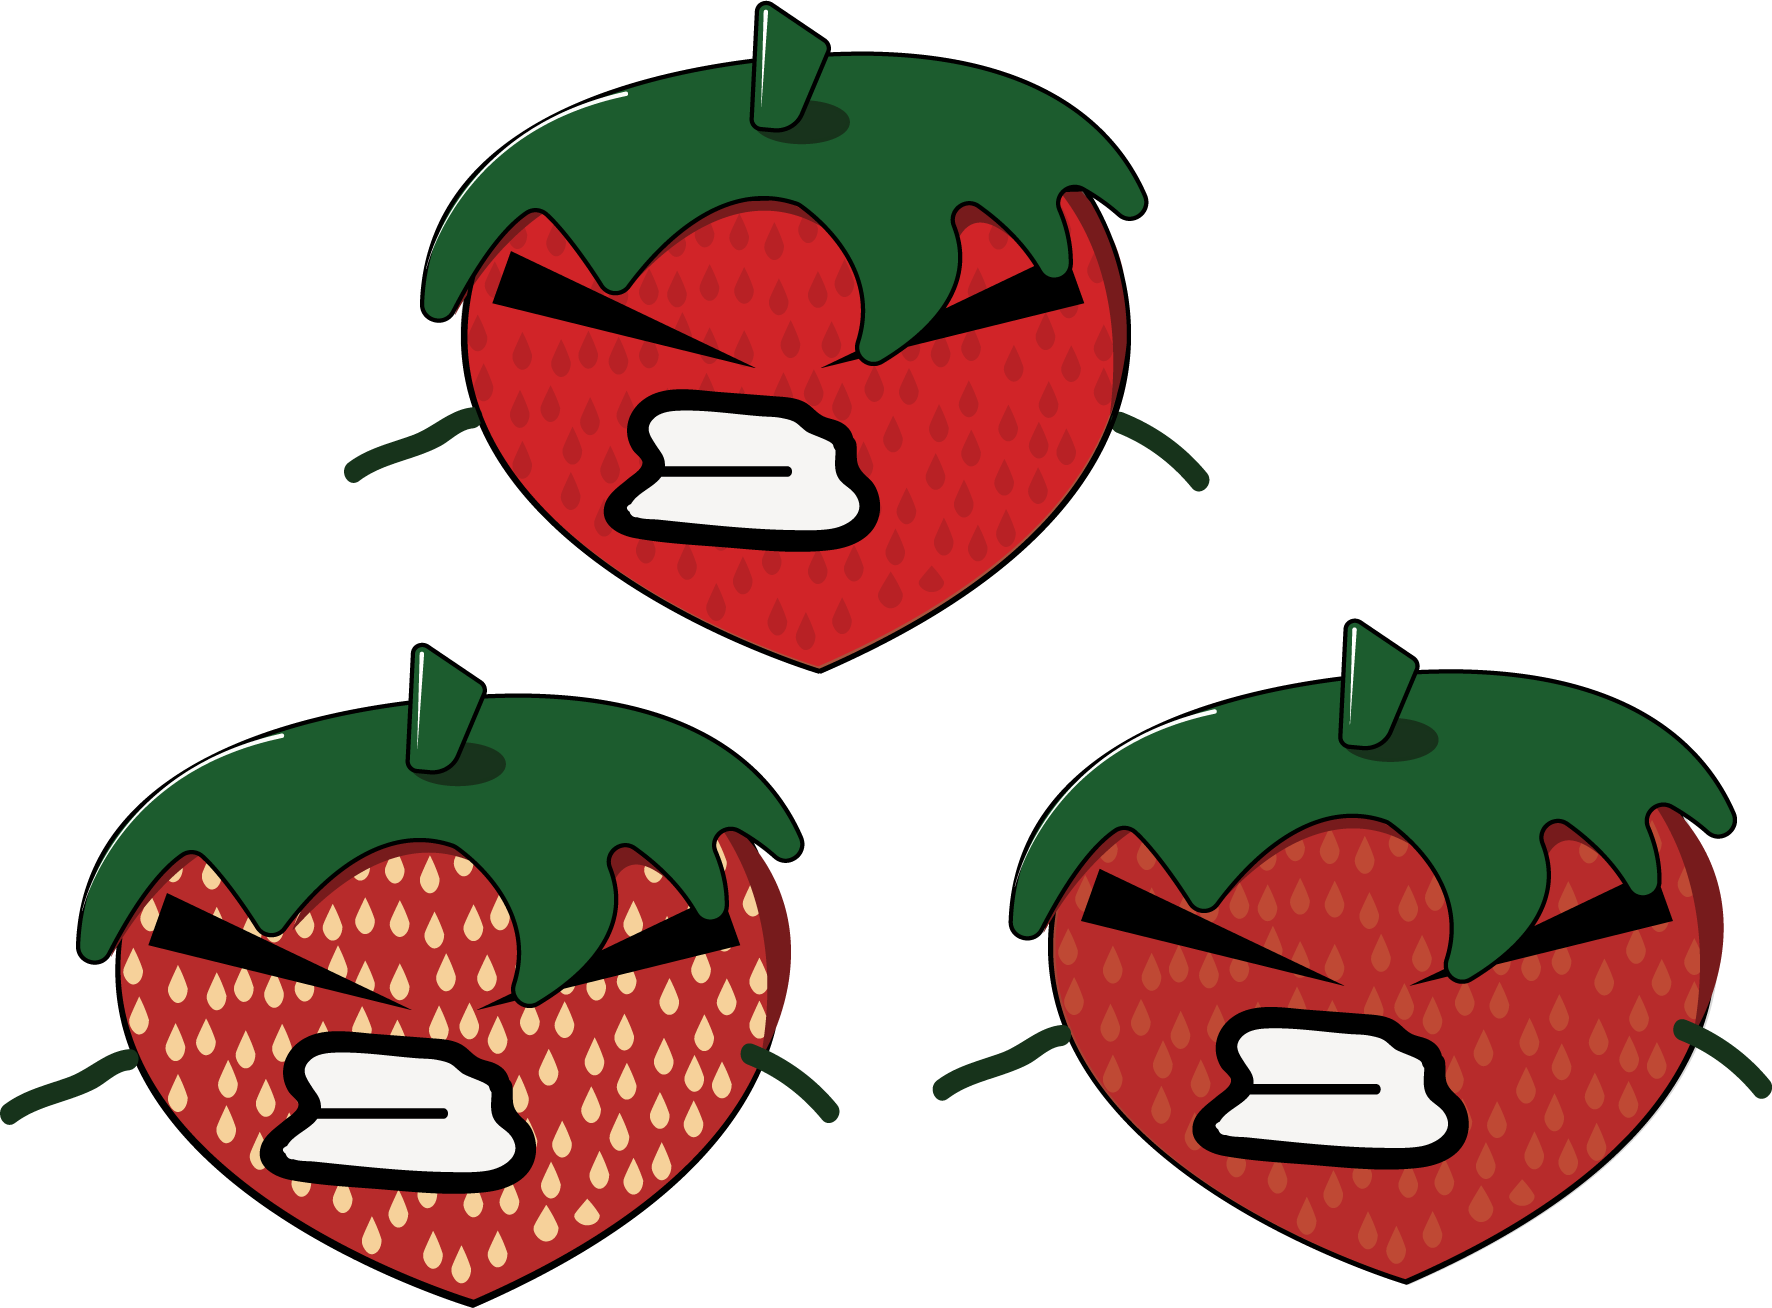 Strawberries clipart angry, Strawberries angry Transparent.